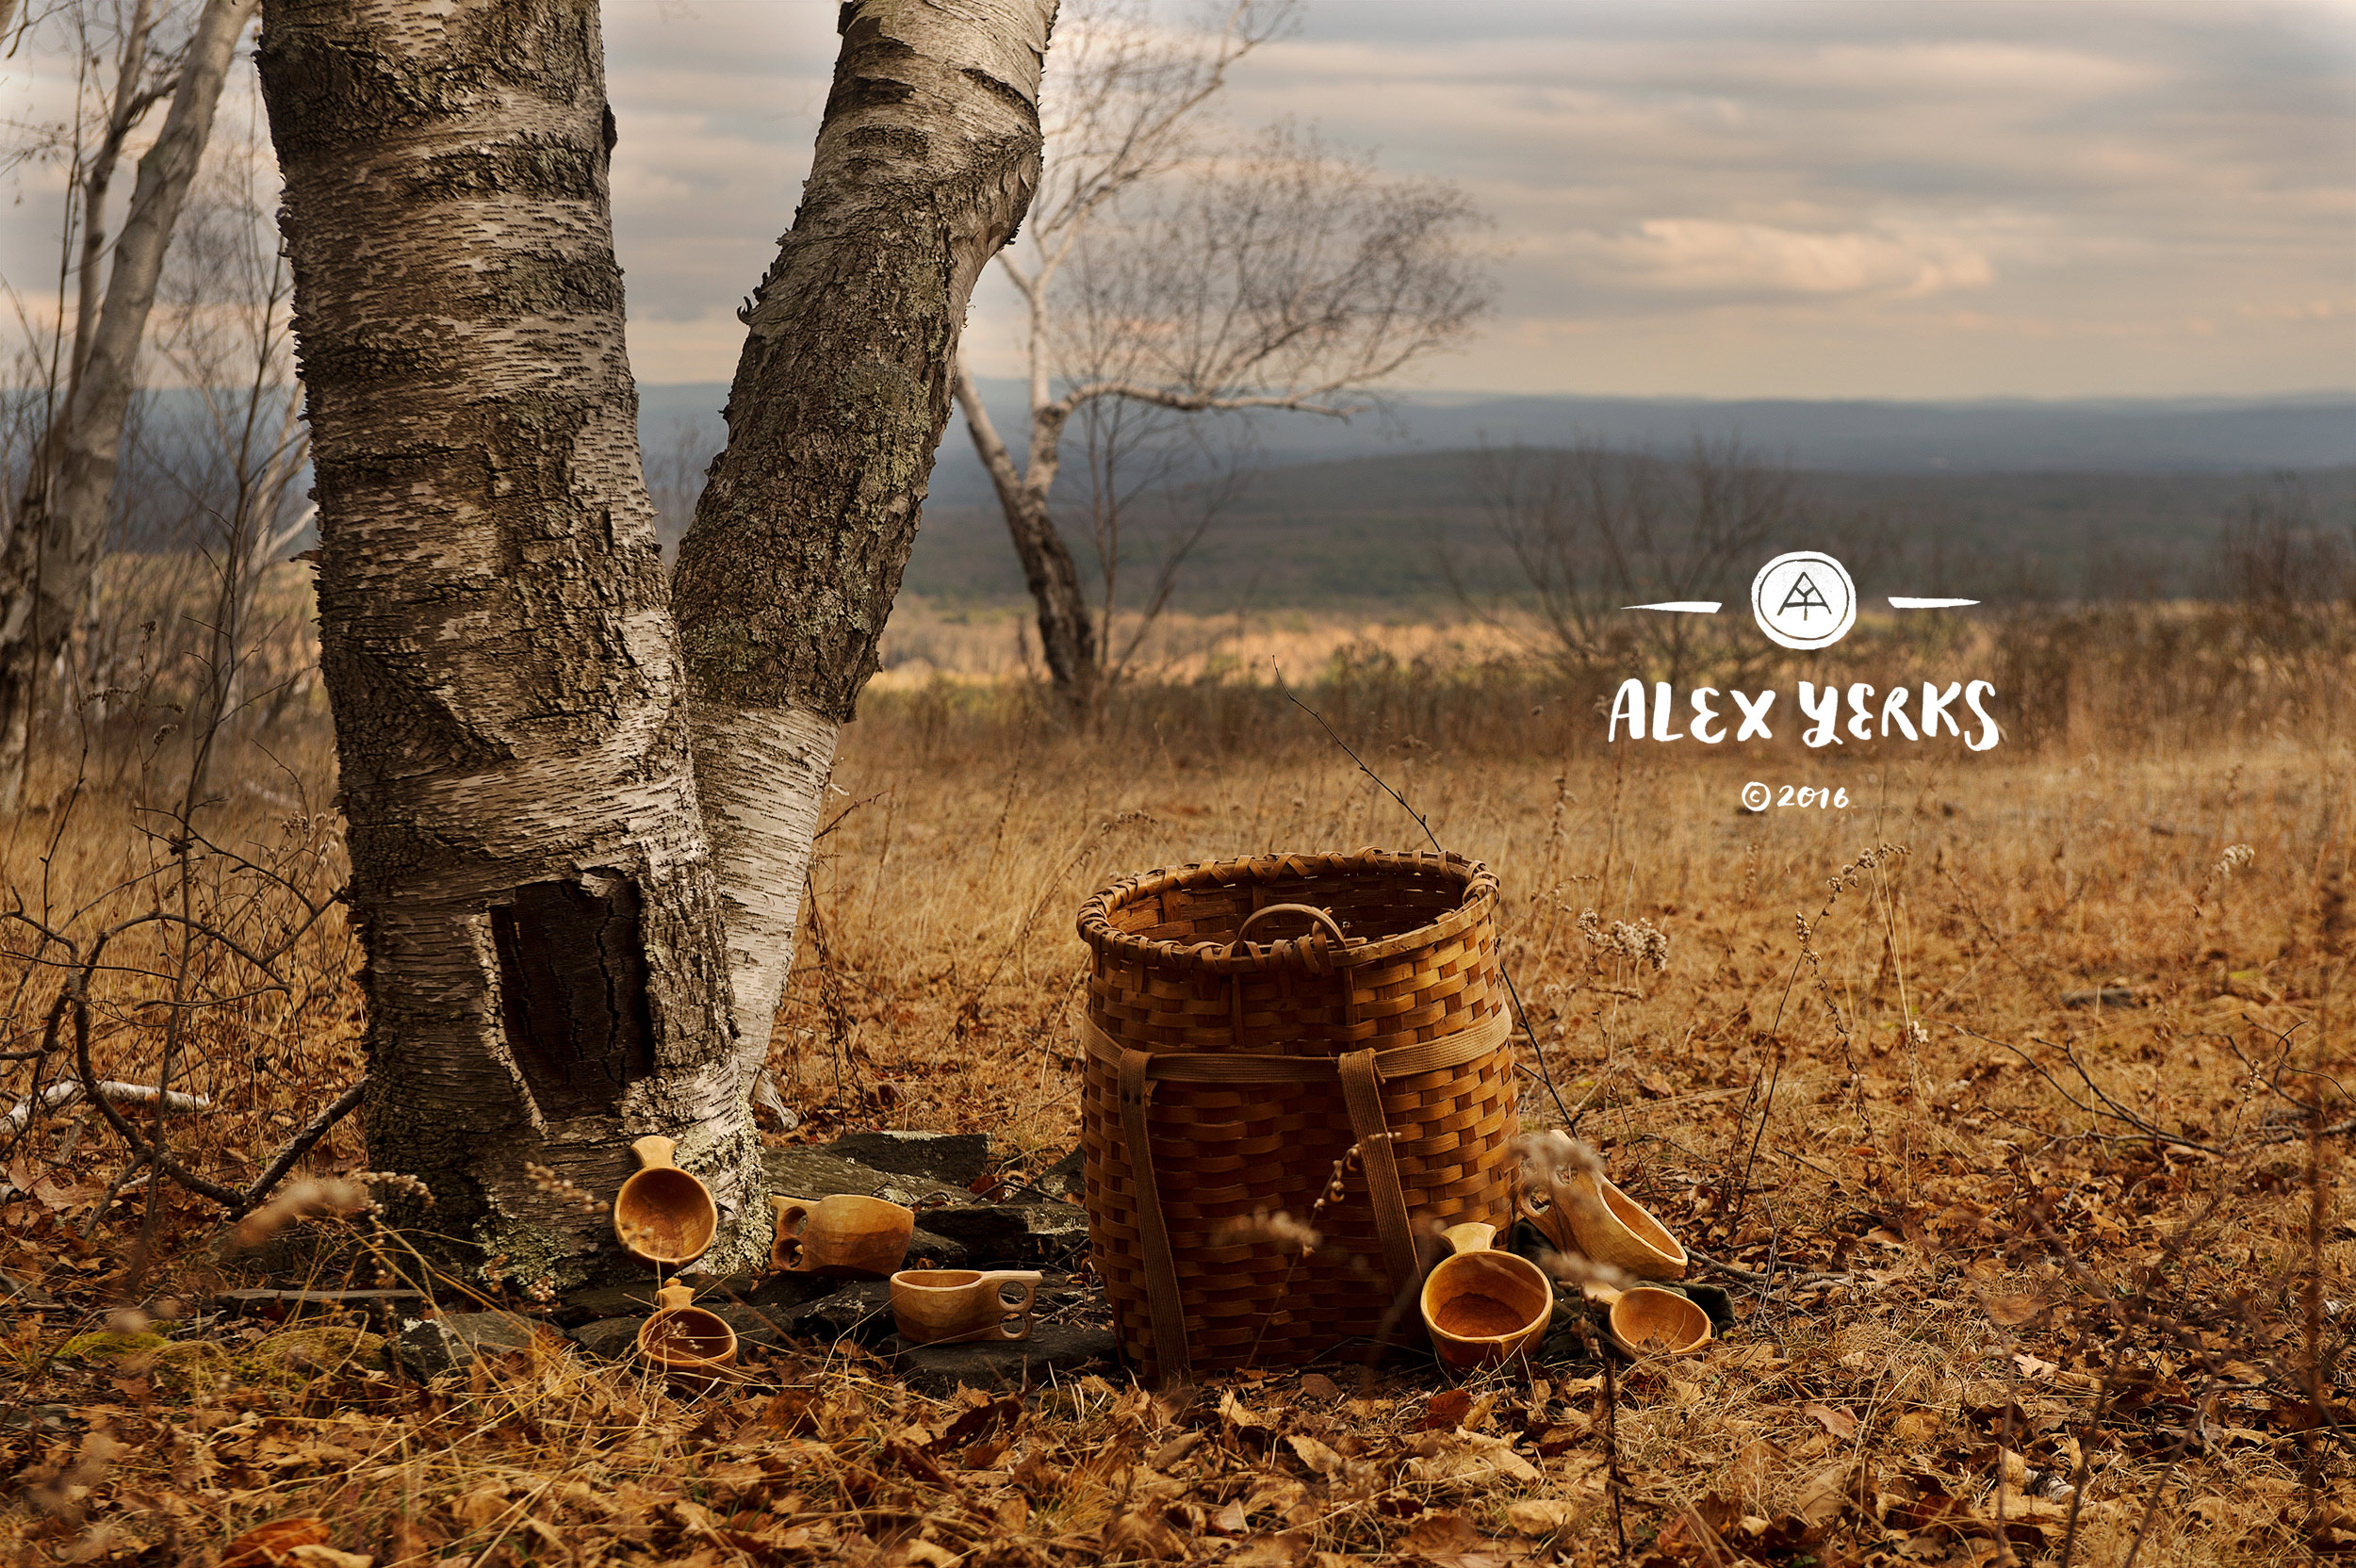 Alex lives and creates in the Catskills Mountains near Woodstock, in upstate New York. His inspiration, his raw materials - the forest is at the heart of everything he does.